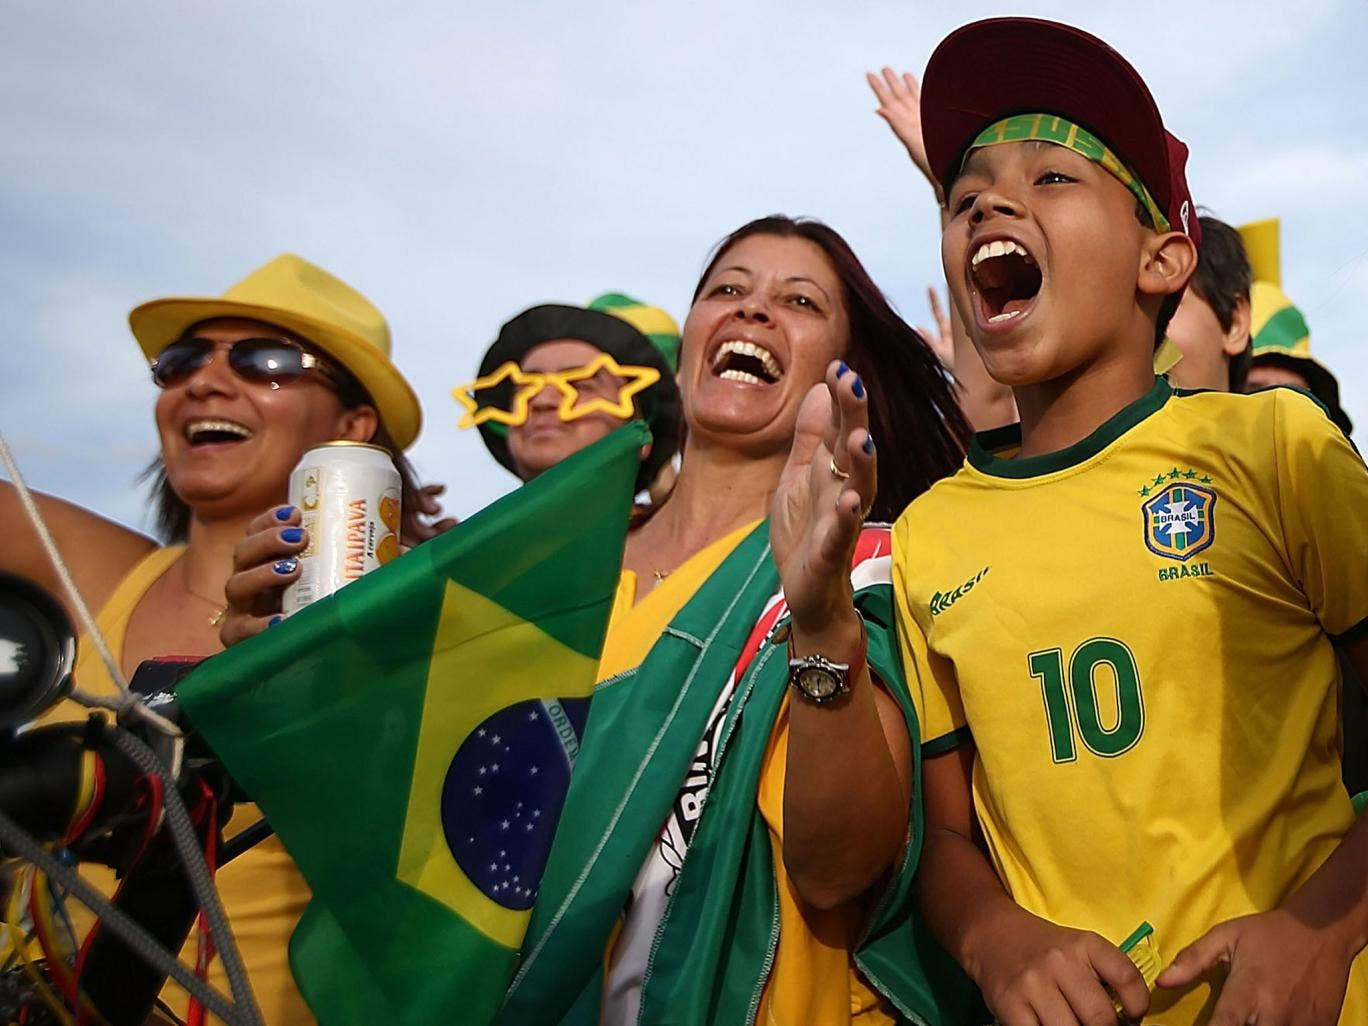 Brazil fans cheer while gathered outside Itaquerao stadium, also known as Arena de Sao Paulo and Arena Corinthians in Sao Paulo